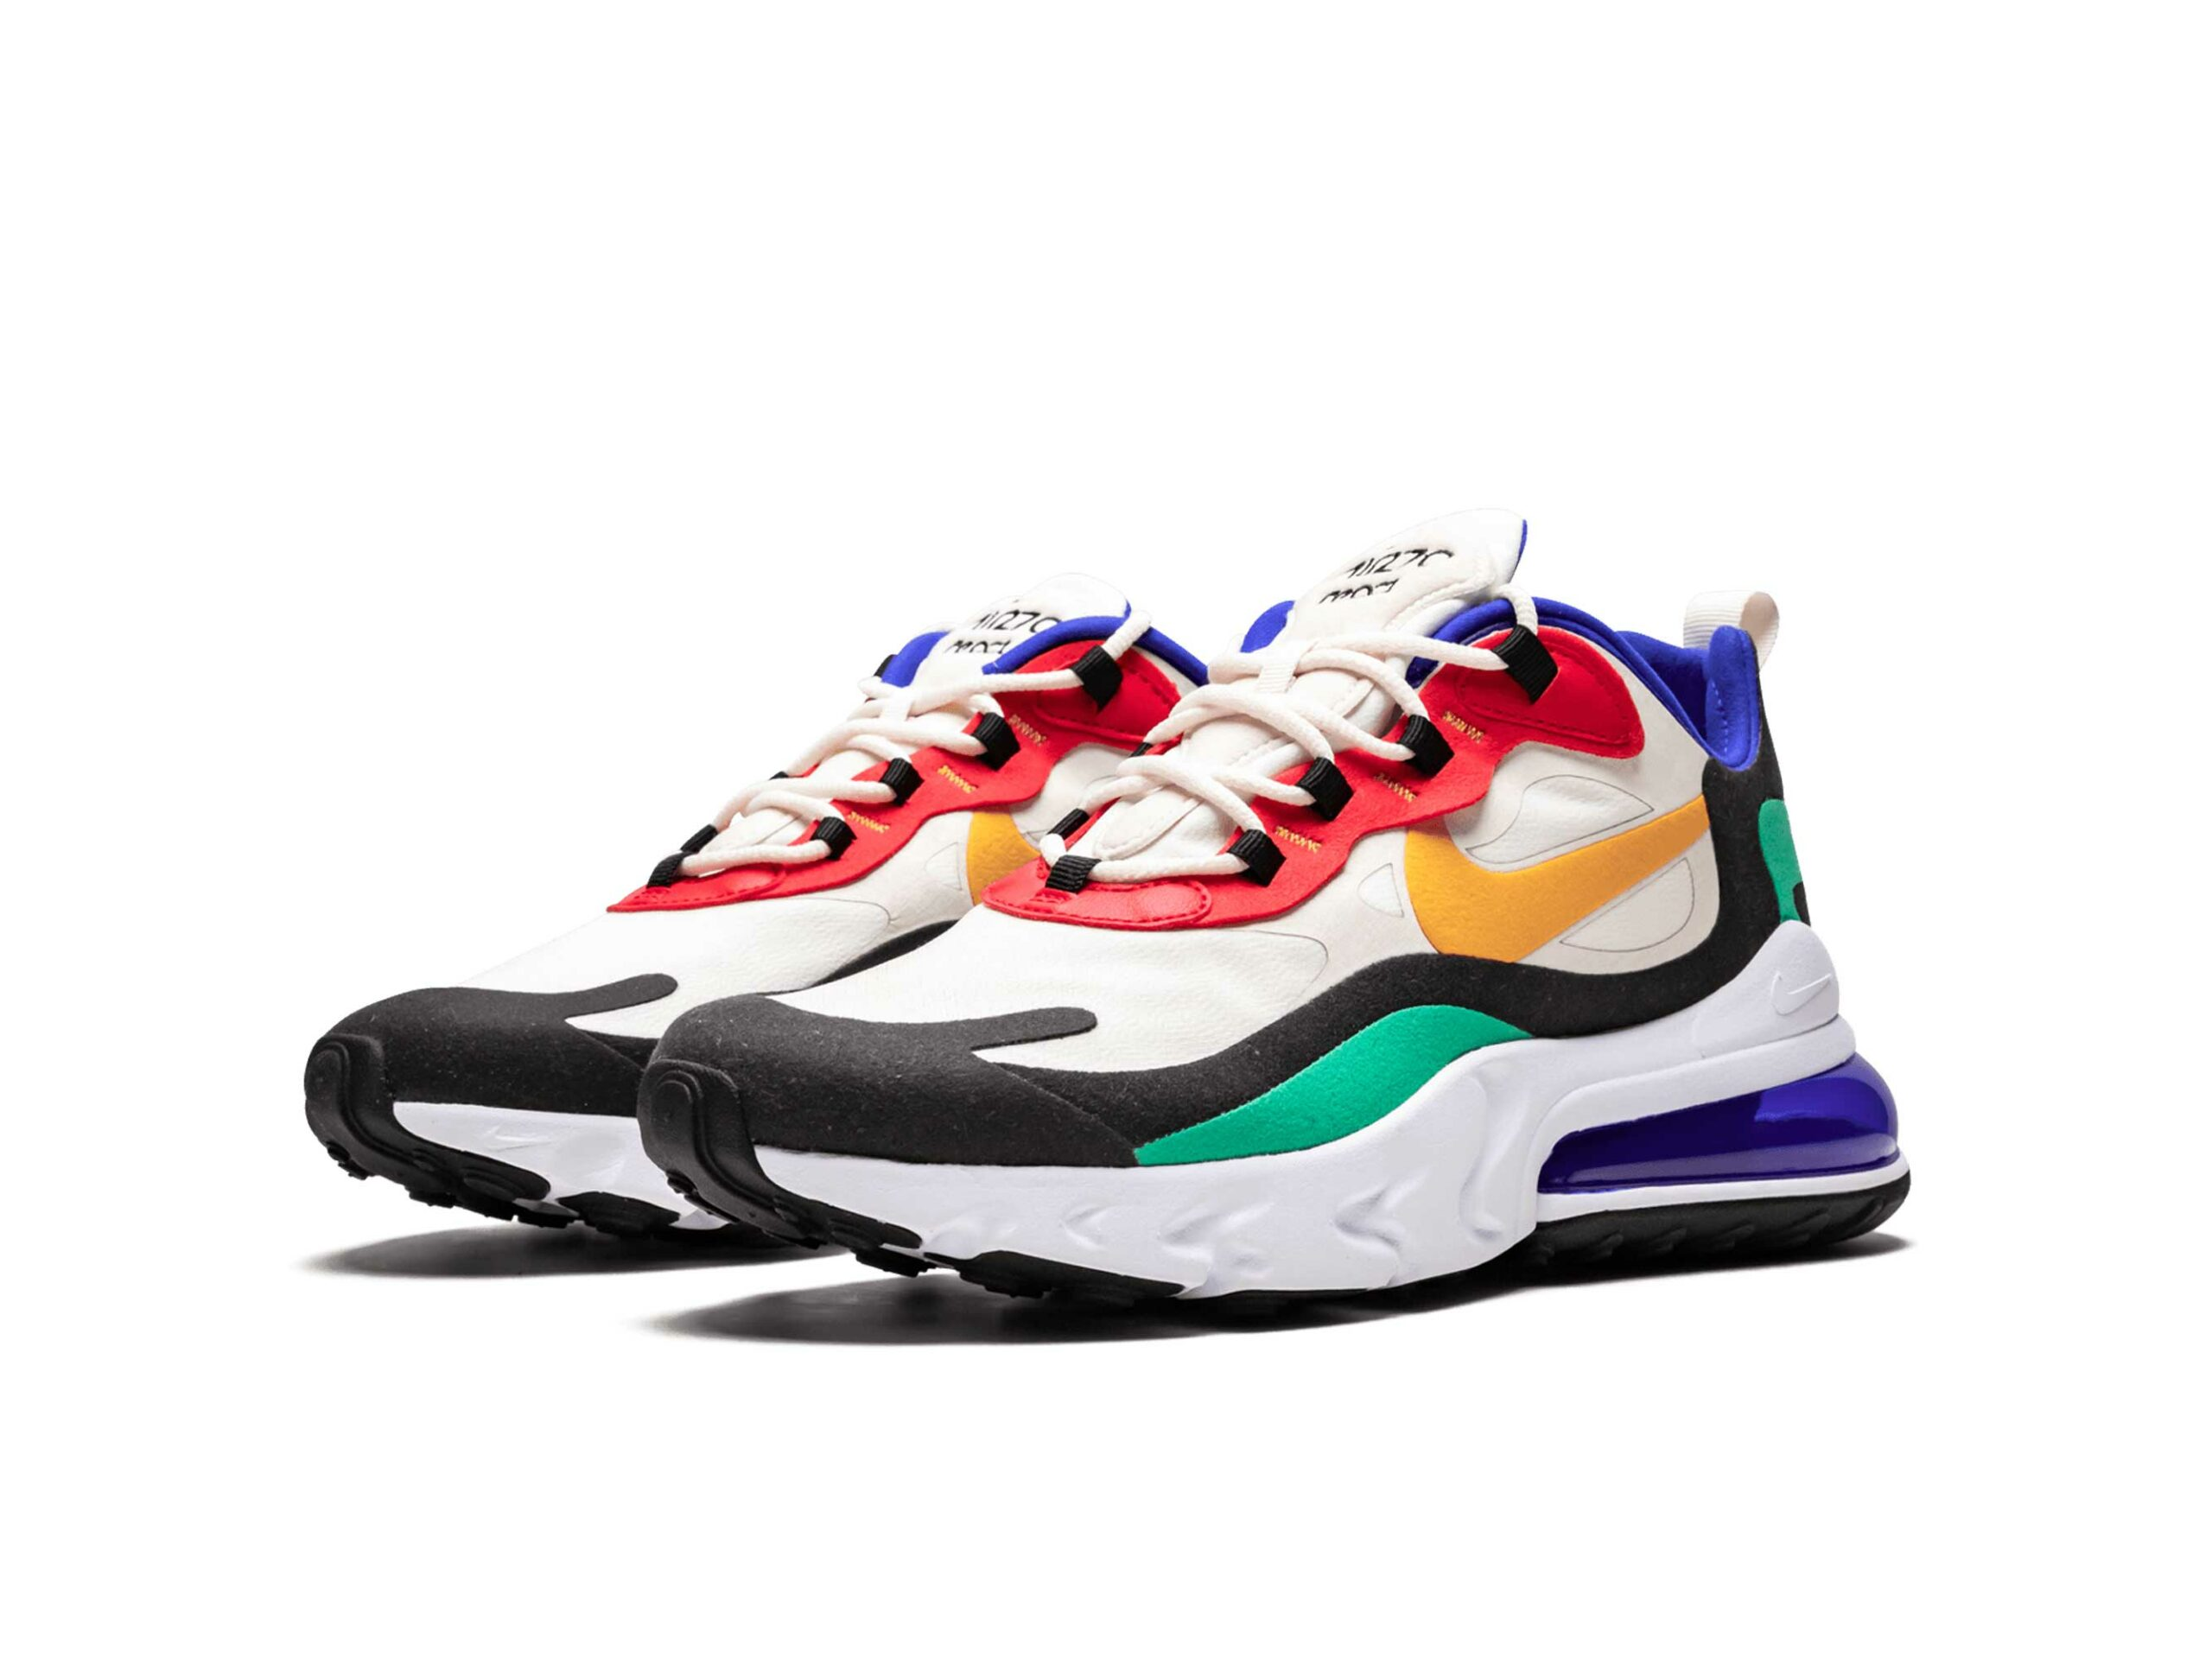 nike air max 270 react bauhaus AO4971_002 купить